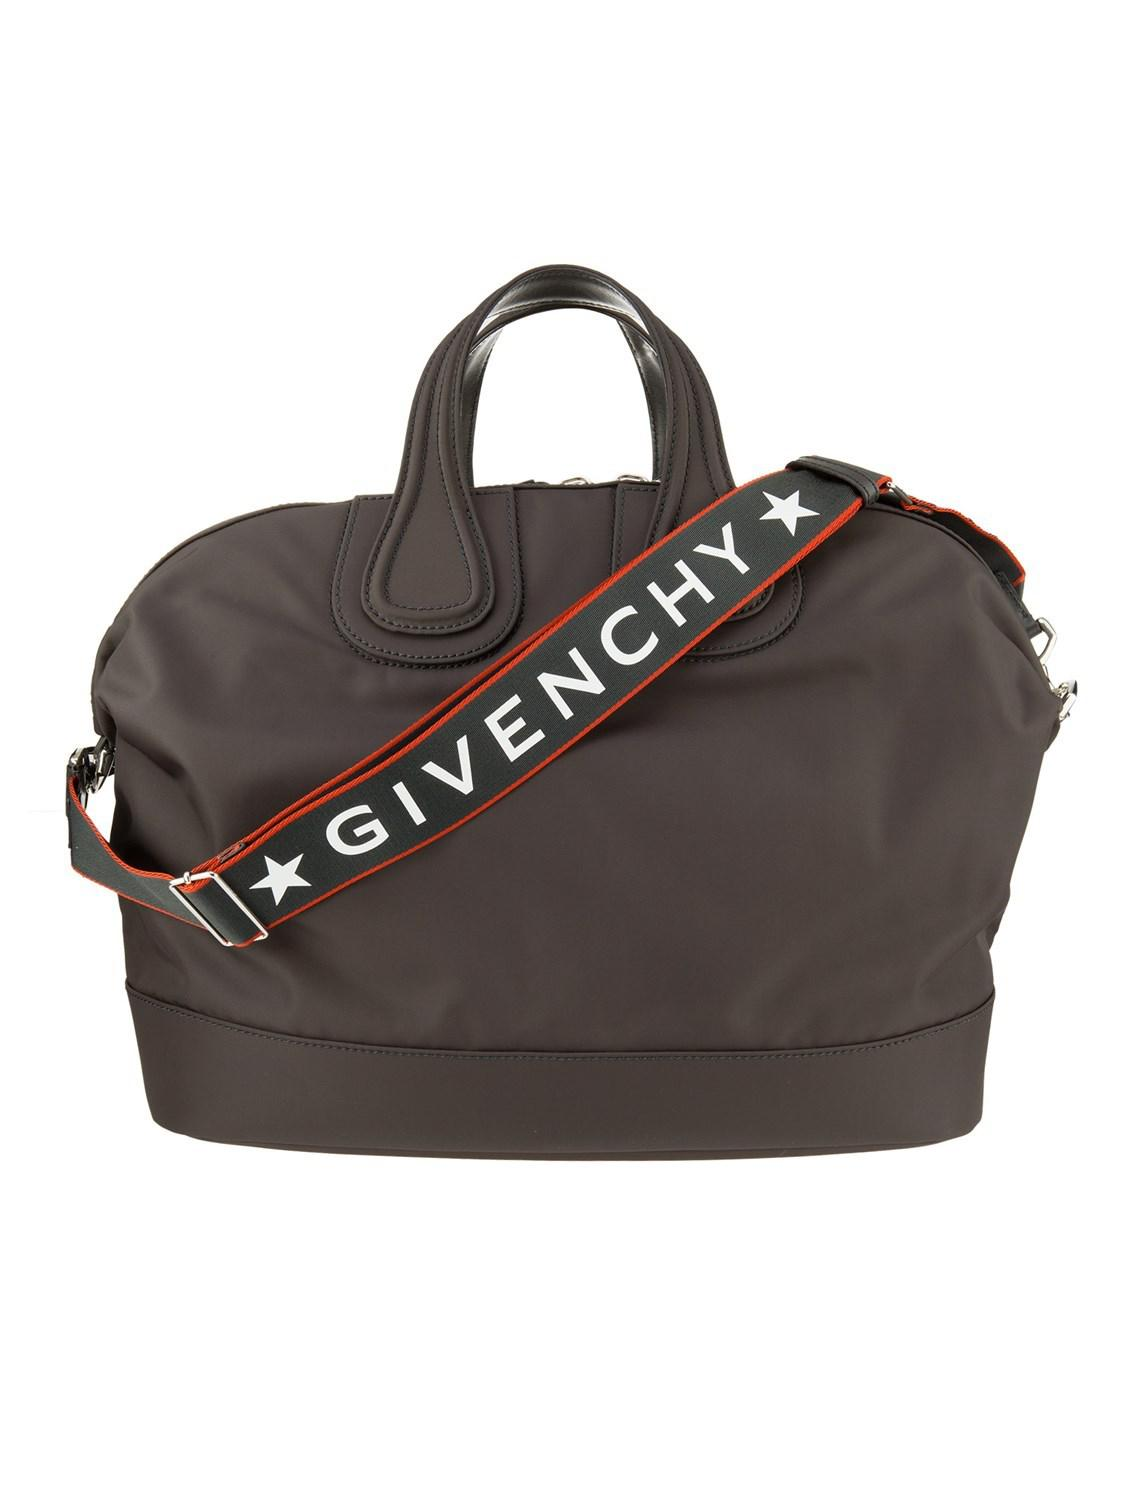 Lyst - Givenchy Black Nightingale Tote Bag In Polyamide With Canvas ... 74e97b45202d2